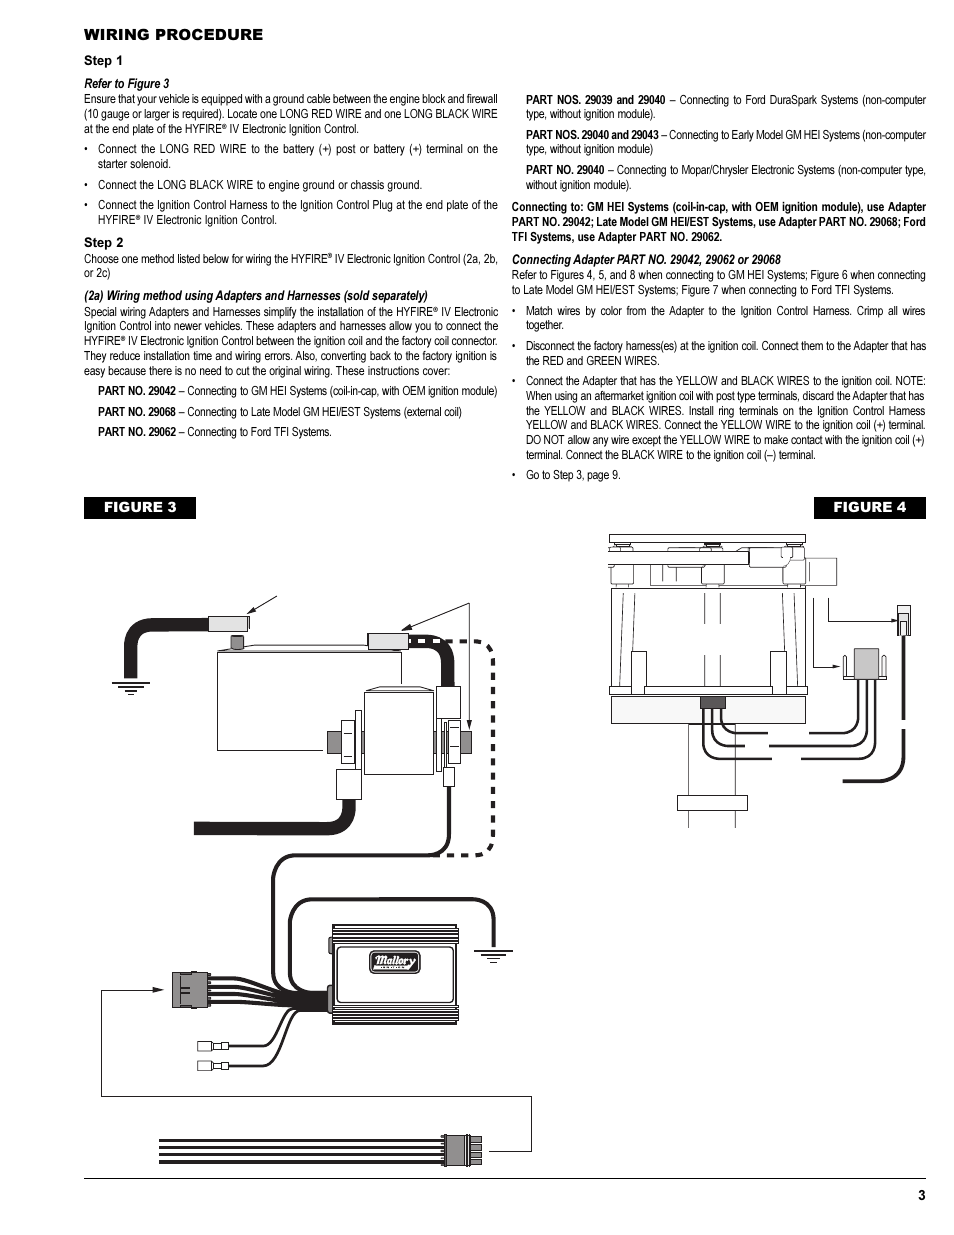 Mallory Hyfire Ignition Wiring Diagram Detailed Schematics For Nitrous Systems Procedure Figure 4 12v Battery 6al